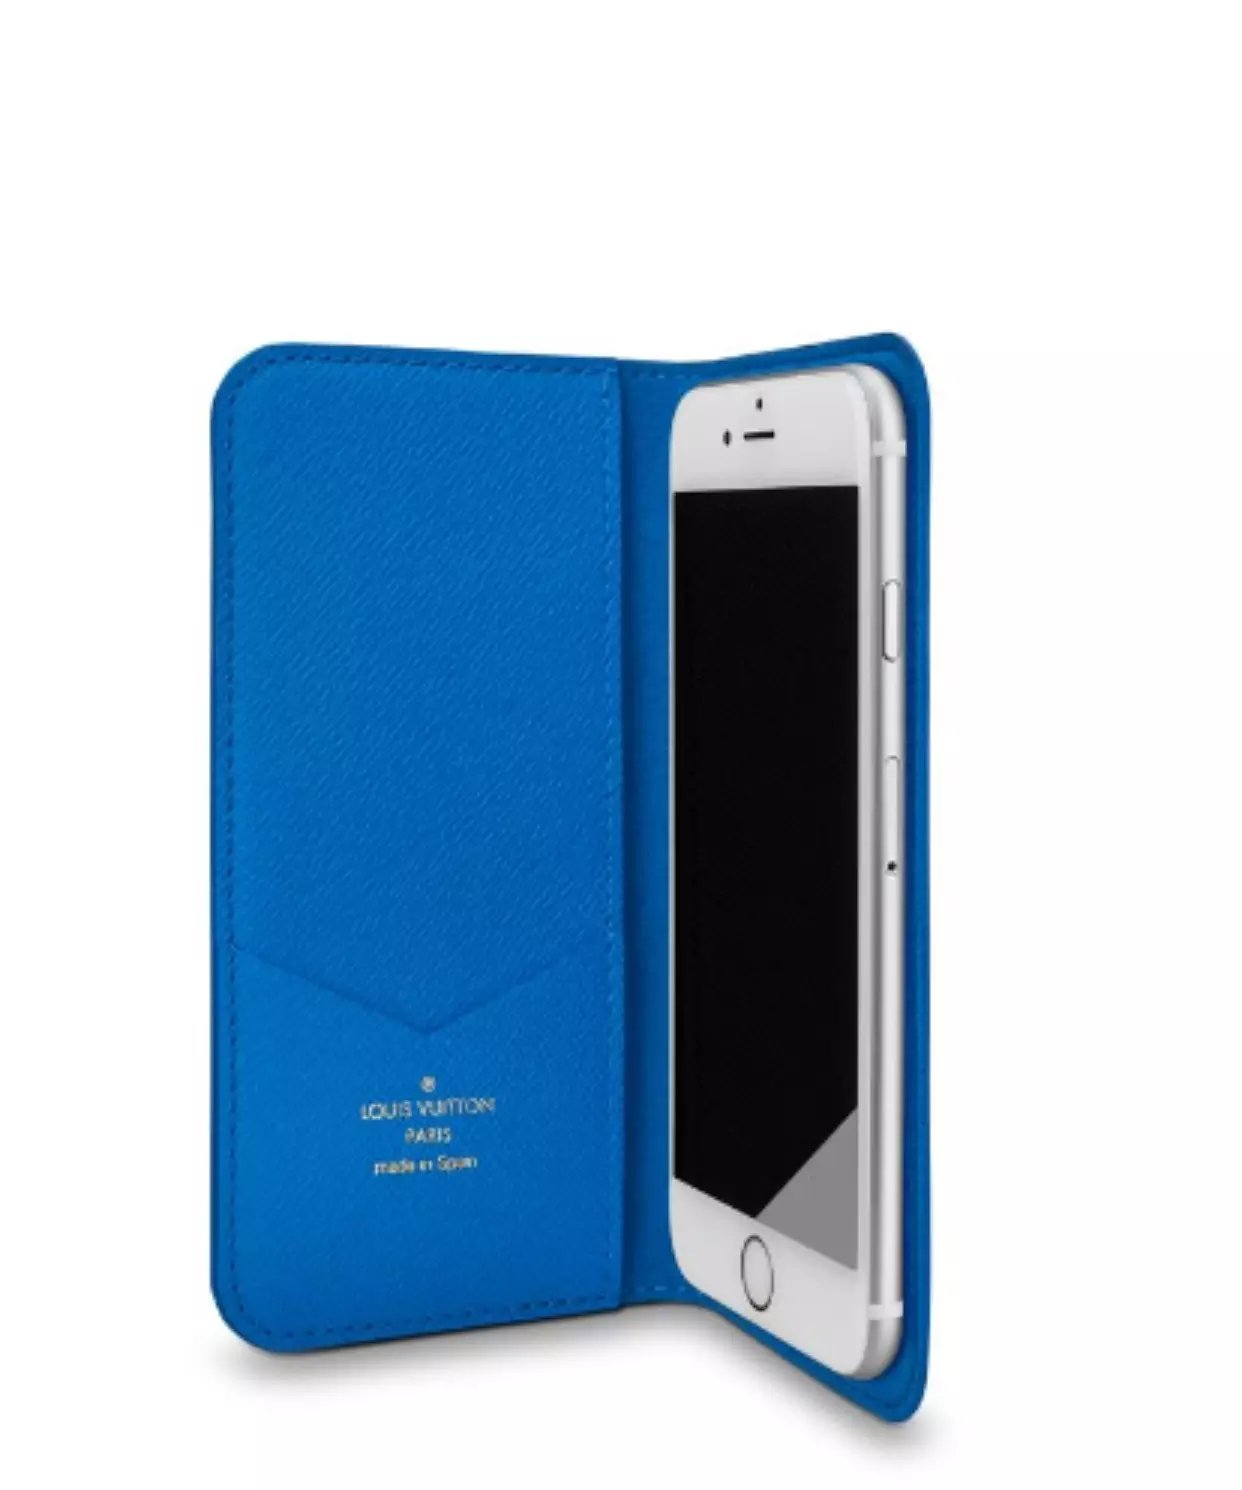 schutzhülle iphone iphone hülle mit foto bedrucken Louis Vuitton iphone6 plus hülle ipad hülle 6lbst gestalten apple handyhülle iphone 6 Plus hardca6 durchsichtige handyhülle iphone 6 Plus individuelle handy cover iphone 6 Plus ganzkörper hülle